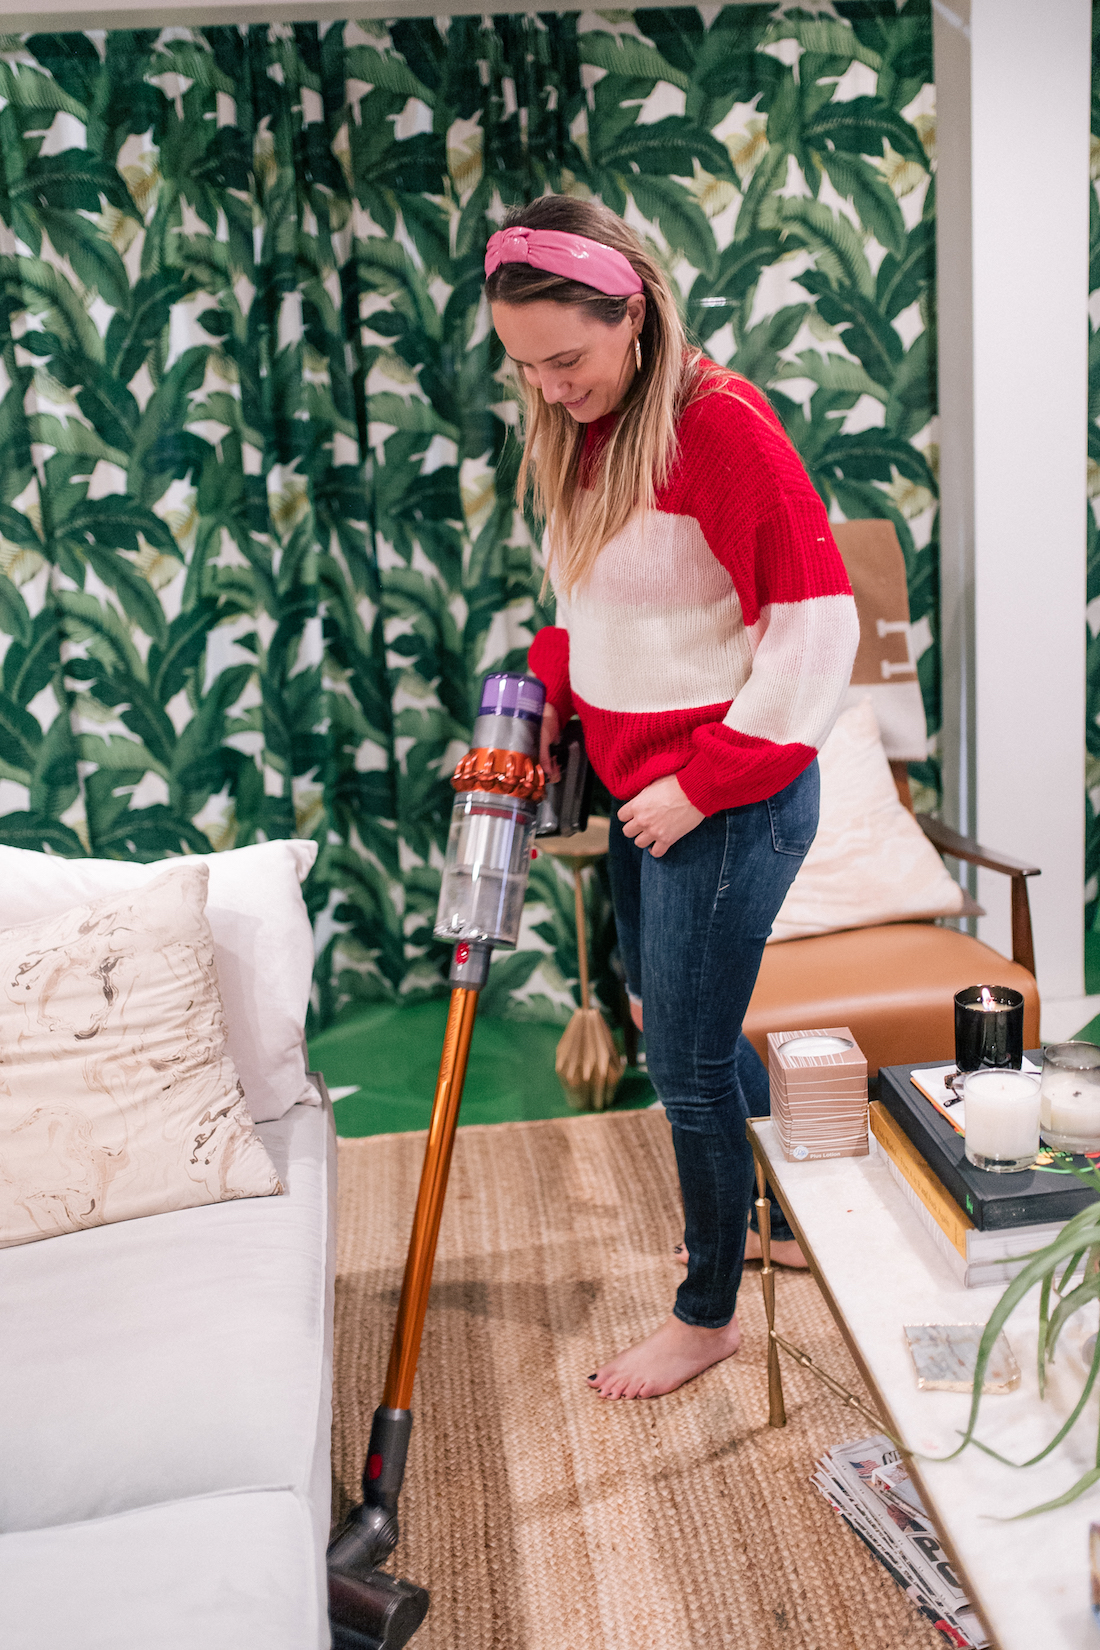 The Vacuum That Changed My Life